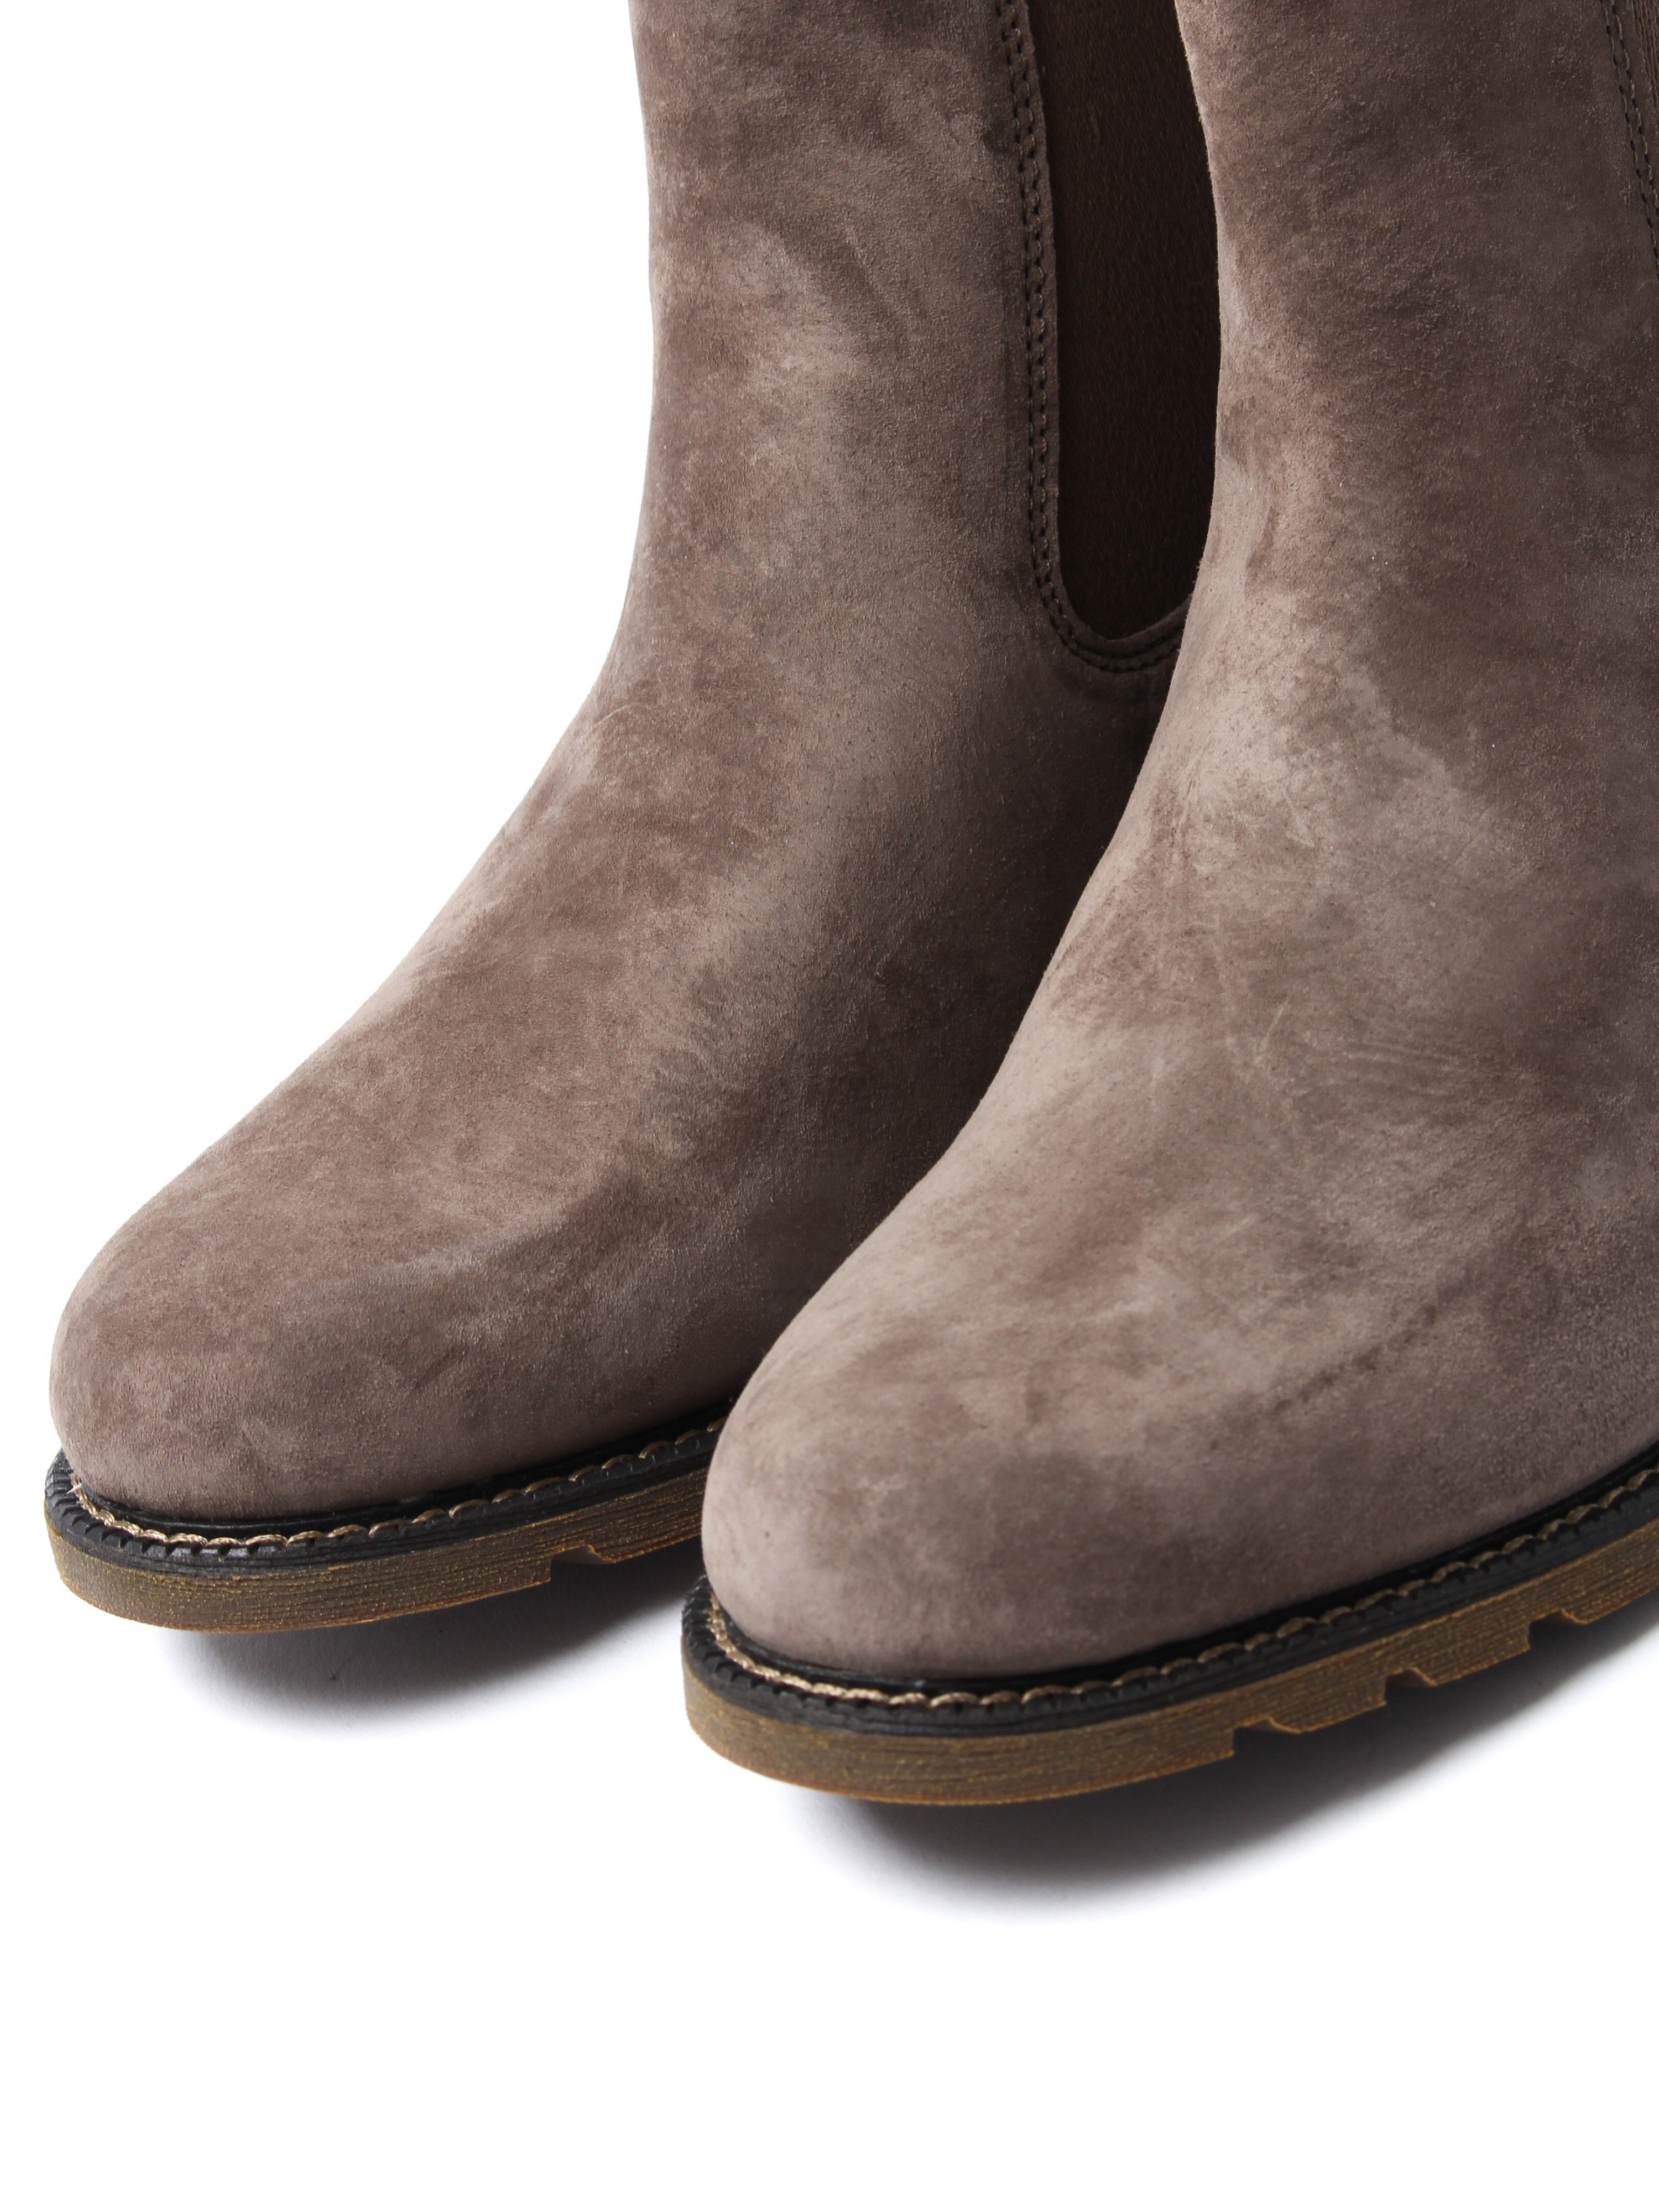 Ariat Women's Wexford H2O Ankle Boots - Taupe